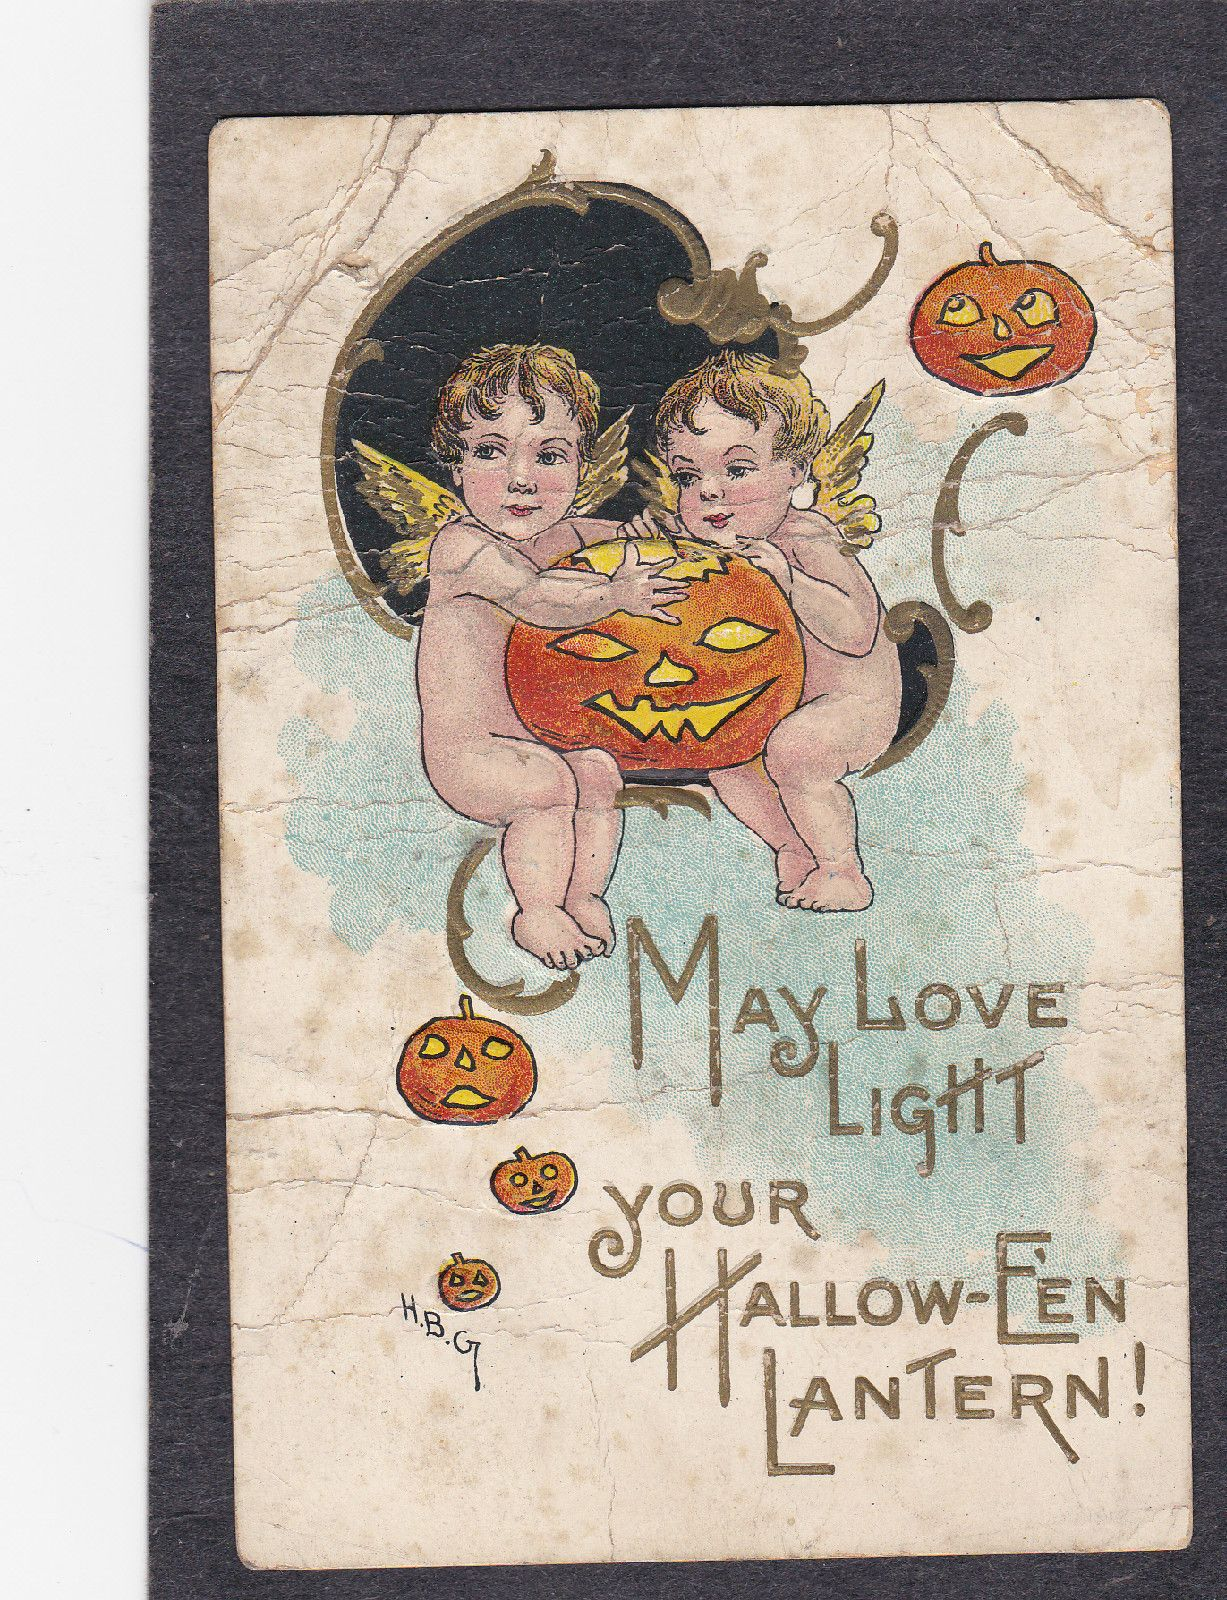 may love light your halloween lantern1912 h b g artist halloween postcard ebay